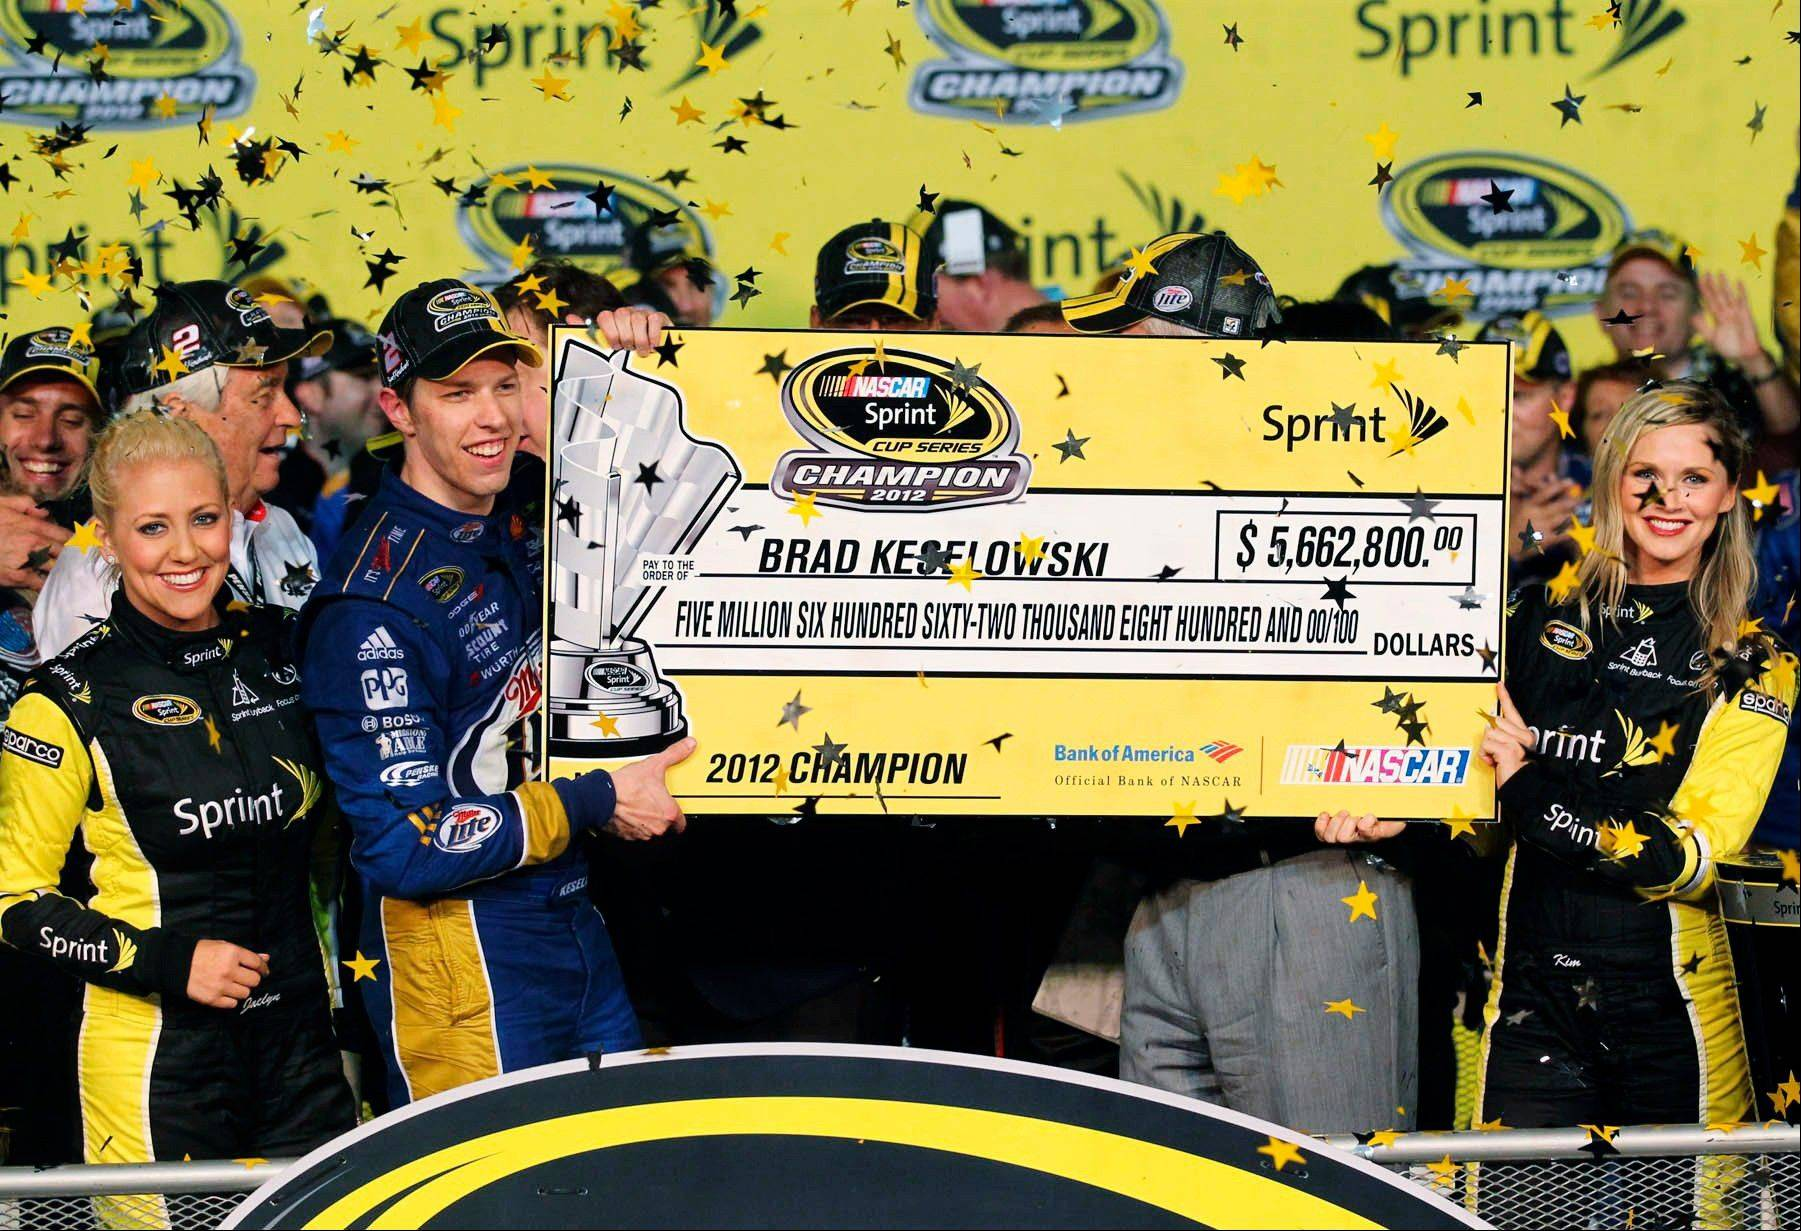 Brad Keselowski holds up an oversized check after winning the NASCAR Sprint Cup Series championship following an auto race at Homestead-Miami Speedway in Homestead, Fla. Keselowski clinched the title after fellow contender Jimmie Johnson pulled out of the season finale because of a parts failure. Jeff Gordon won the race.